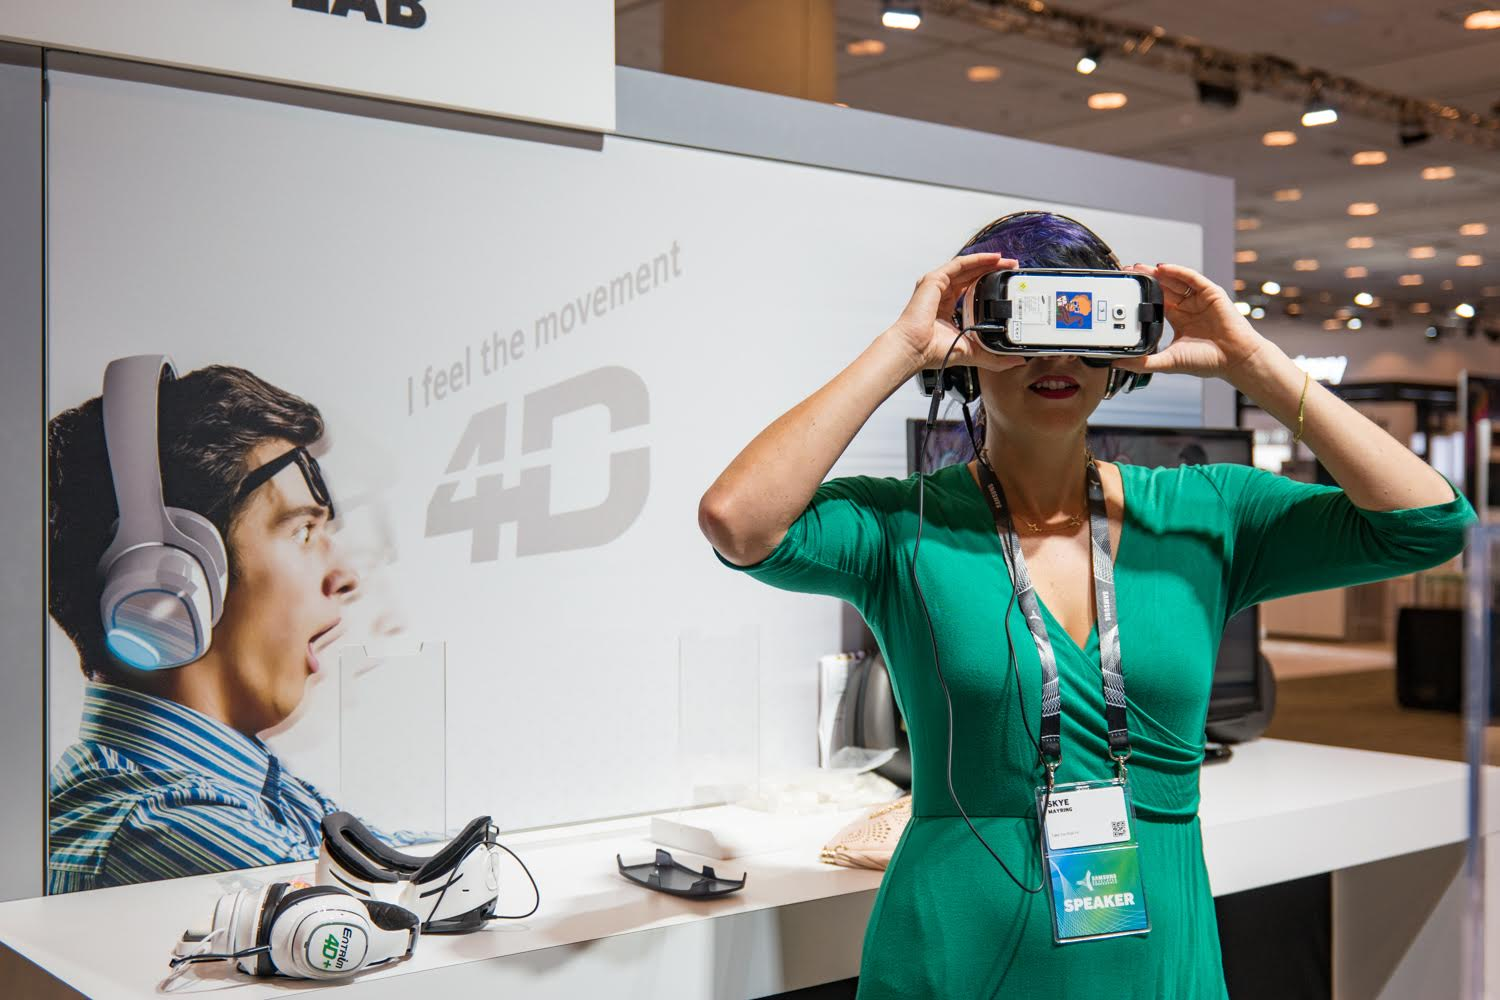 Joan Jetsetter experimenting with movement in VR at the Samsung Developer Conference in San Francisco, Calif. Image by  Wasim Muklashy .